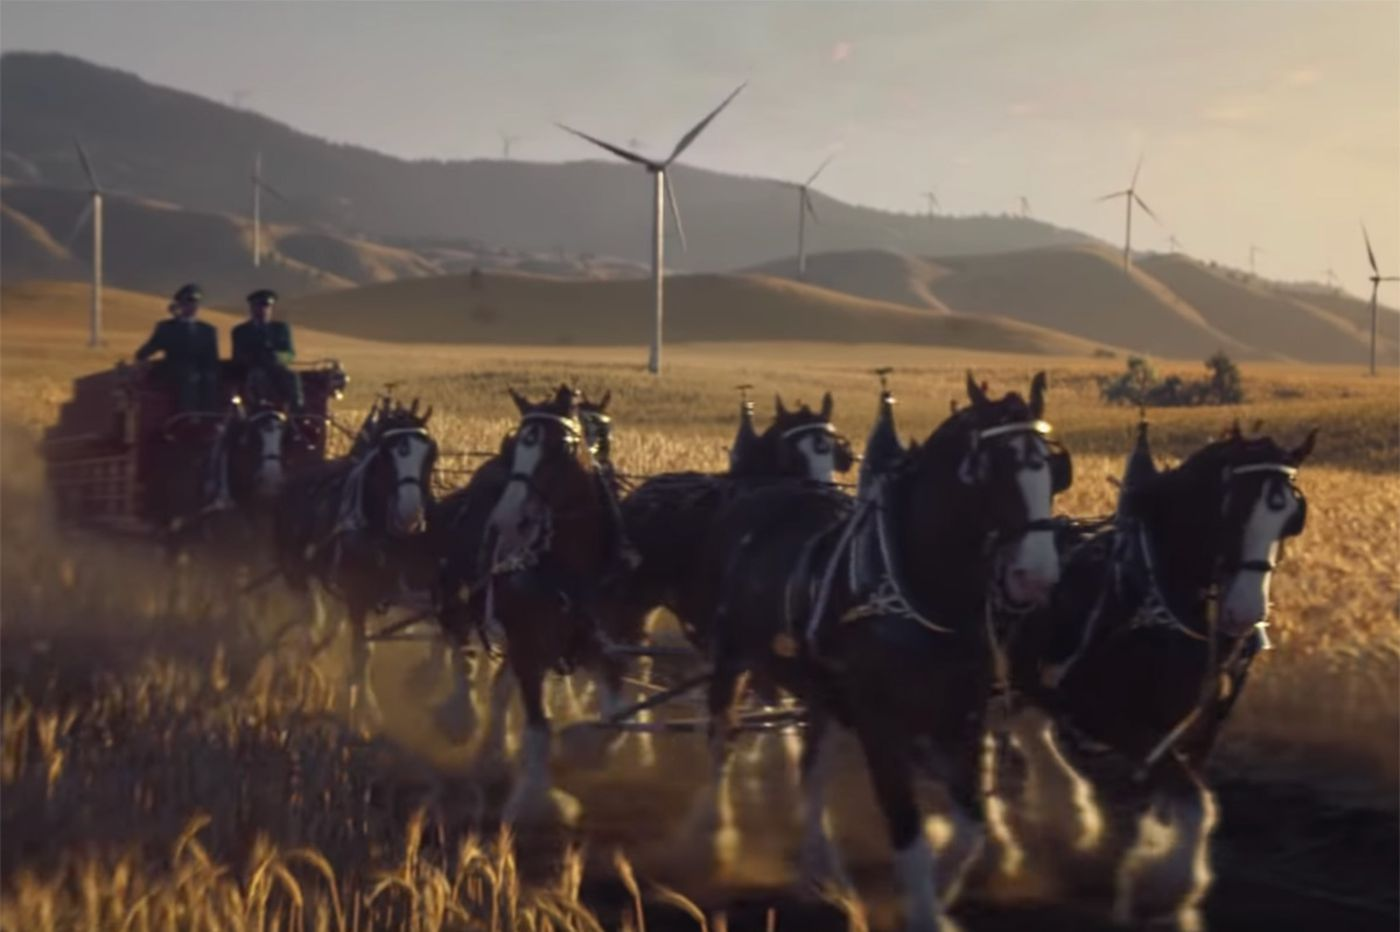 Budweiser's Super Bowl commercial featuring Clydesdales and wind power draws big numbers online